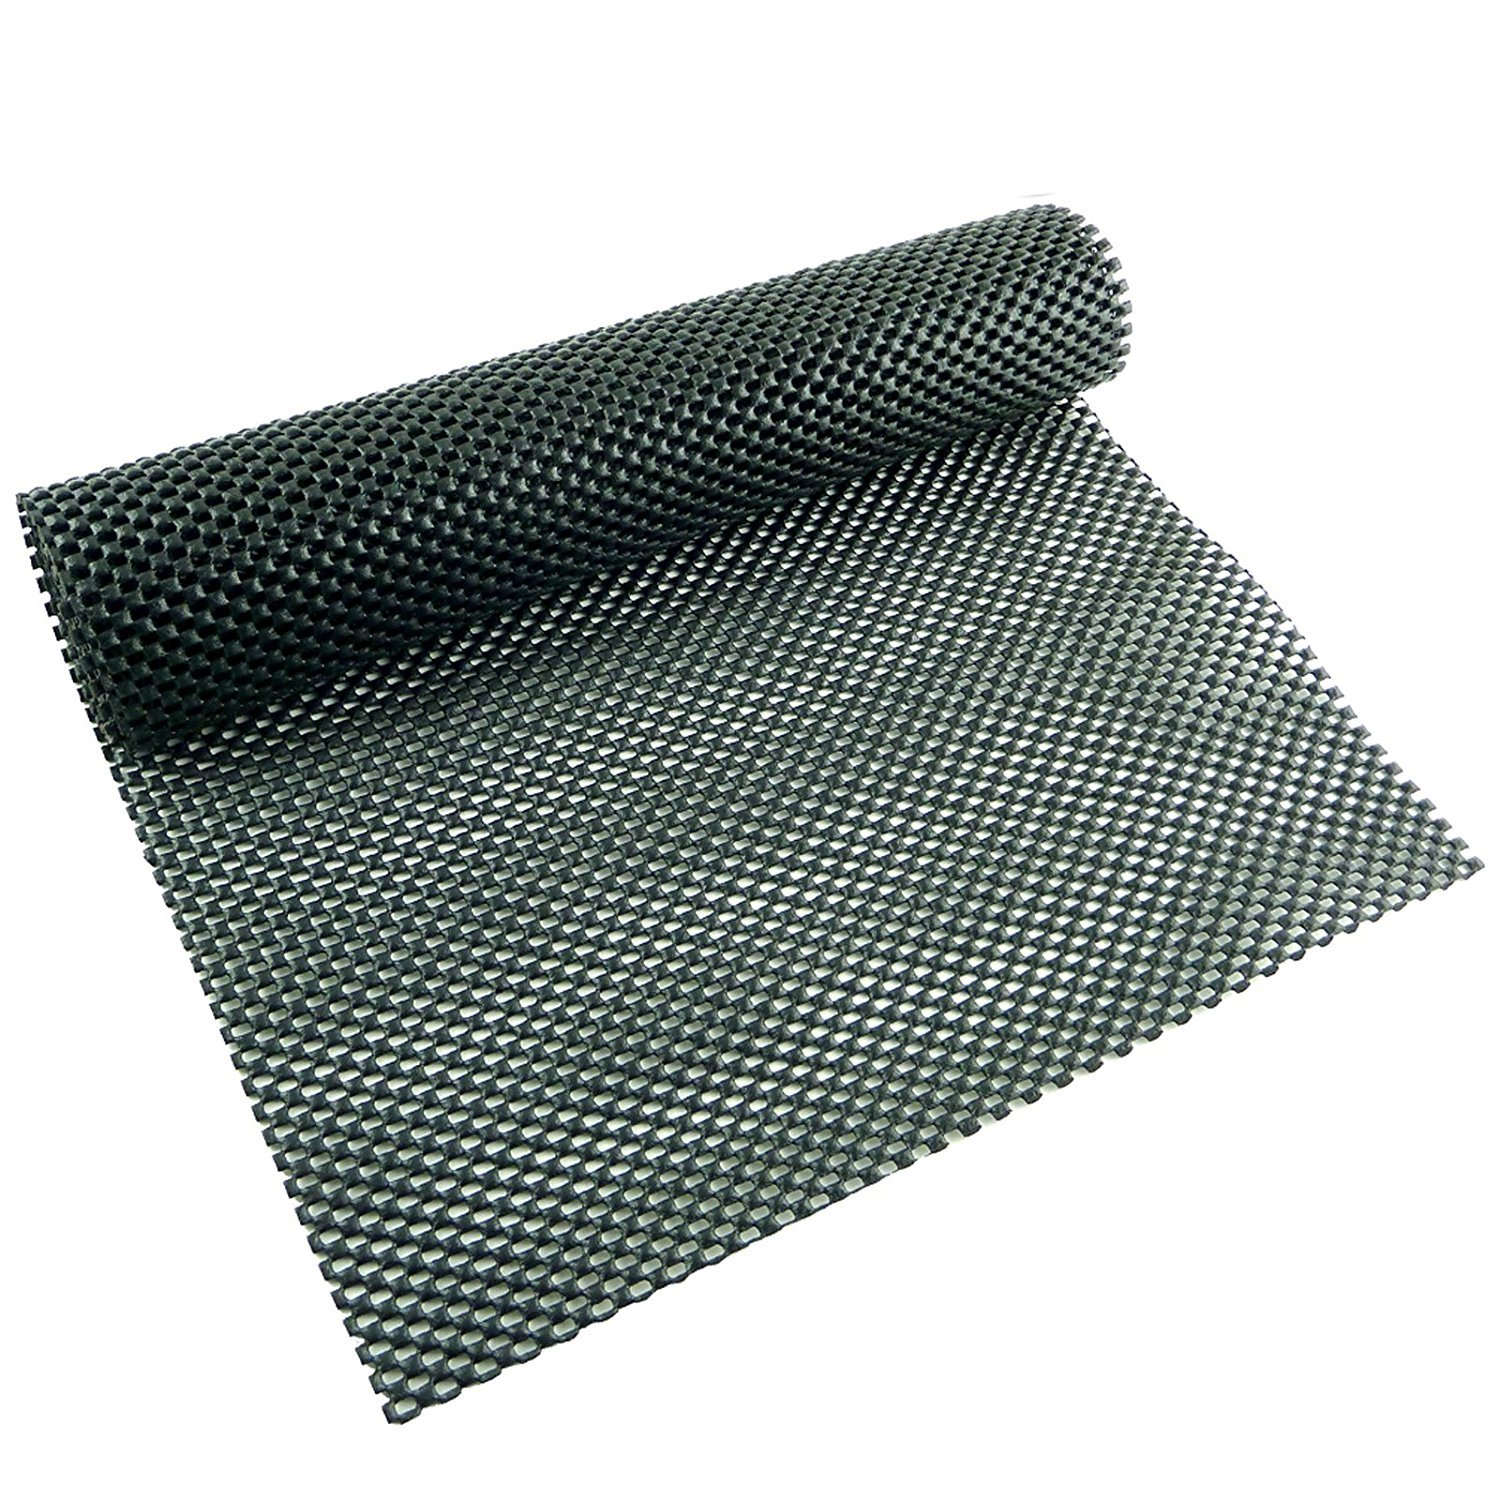 NON SLIP GRIP GRIPPER MAT - NON SLIP RUG GRIPPER - EXTRA THICK by Bid Buy Direct BID-BUY-DIRECT UKASNHKTN8168